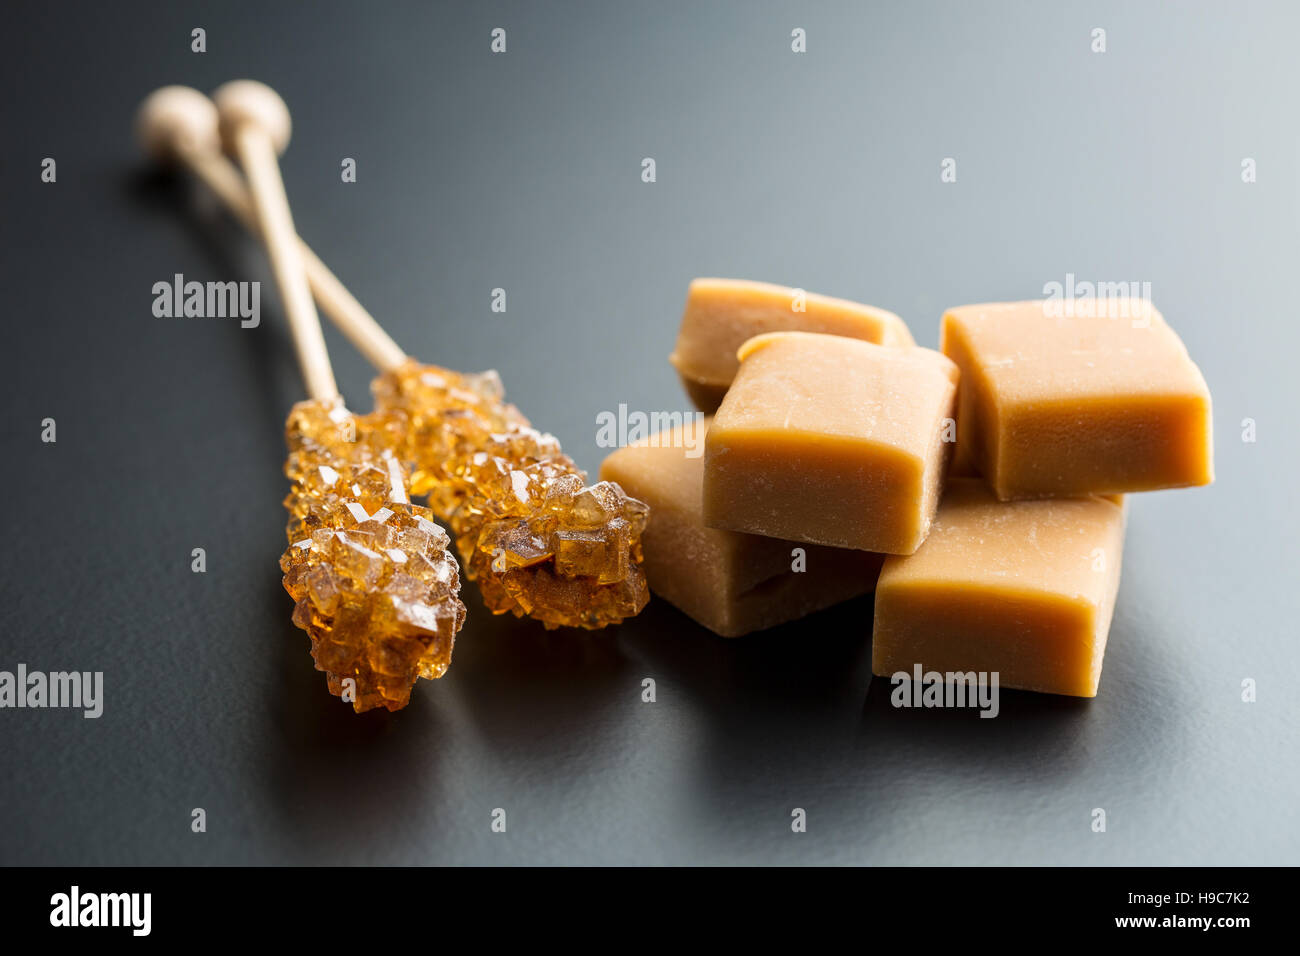 Brown sugar crystals on stick and caramel candies on black background. - Stock Image